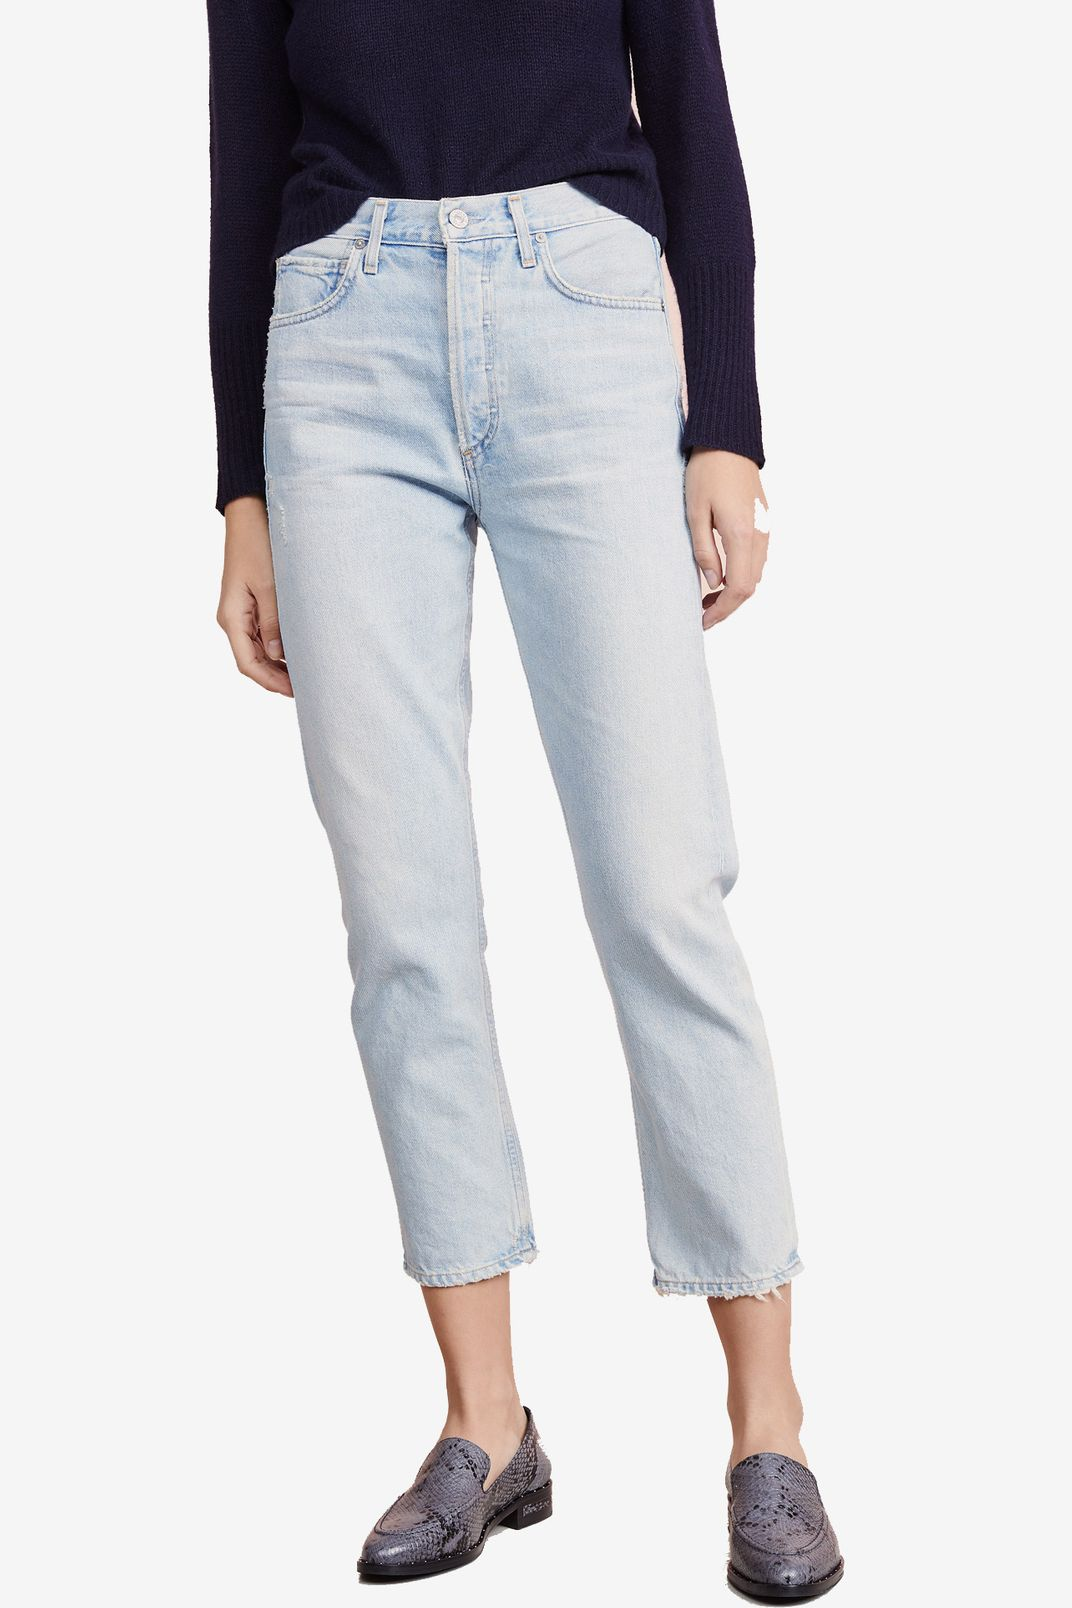 029eba98855960 Citizens of Humanity Charlotte Crop High Rise Straight Jeans